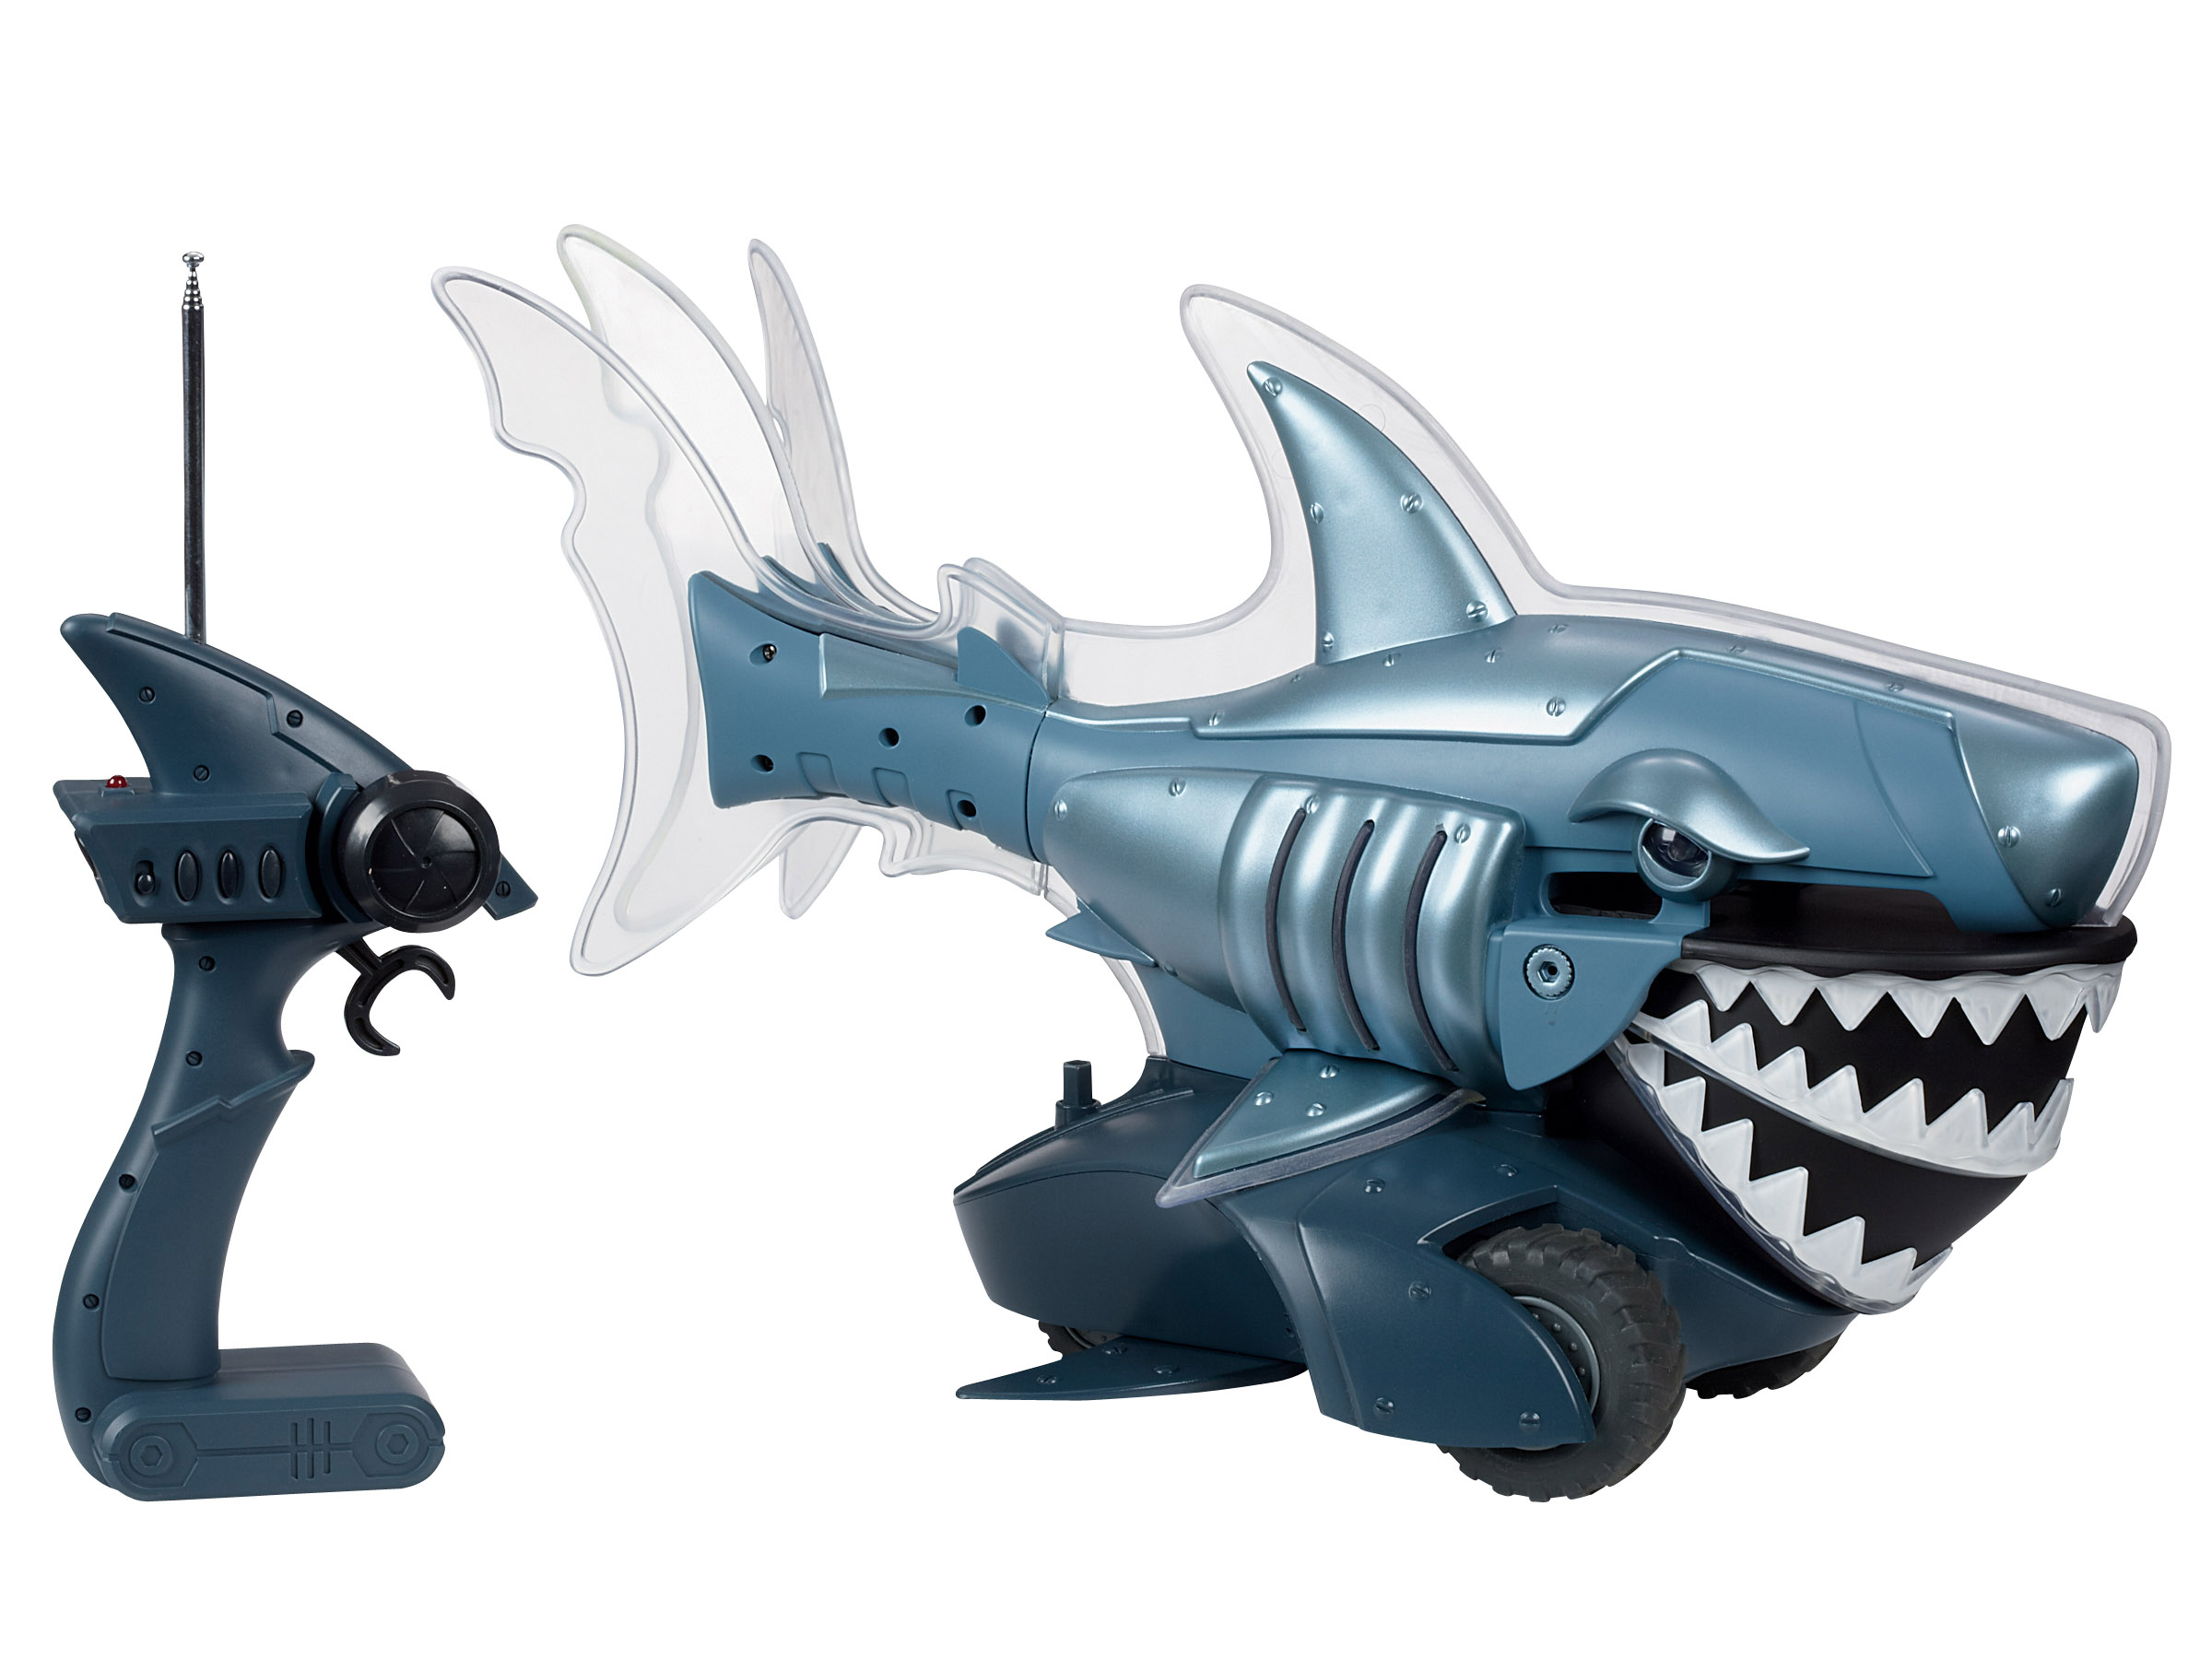 Shark Toys At Toys R Us : Toys r us announces holiday toy trends fashion